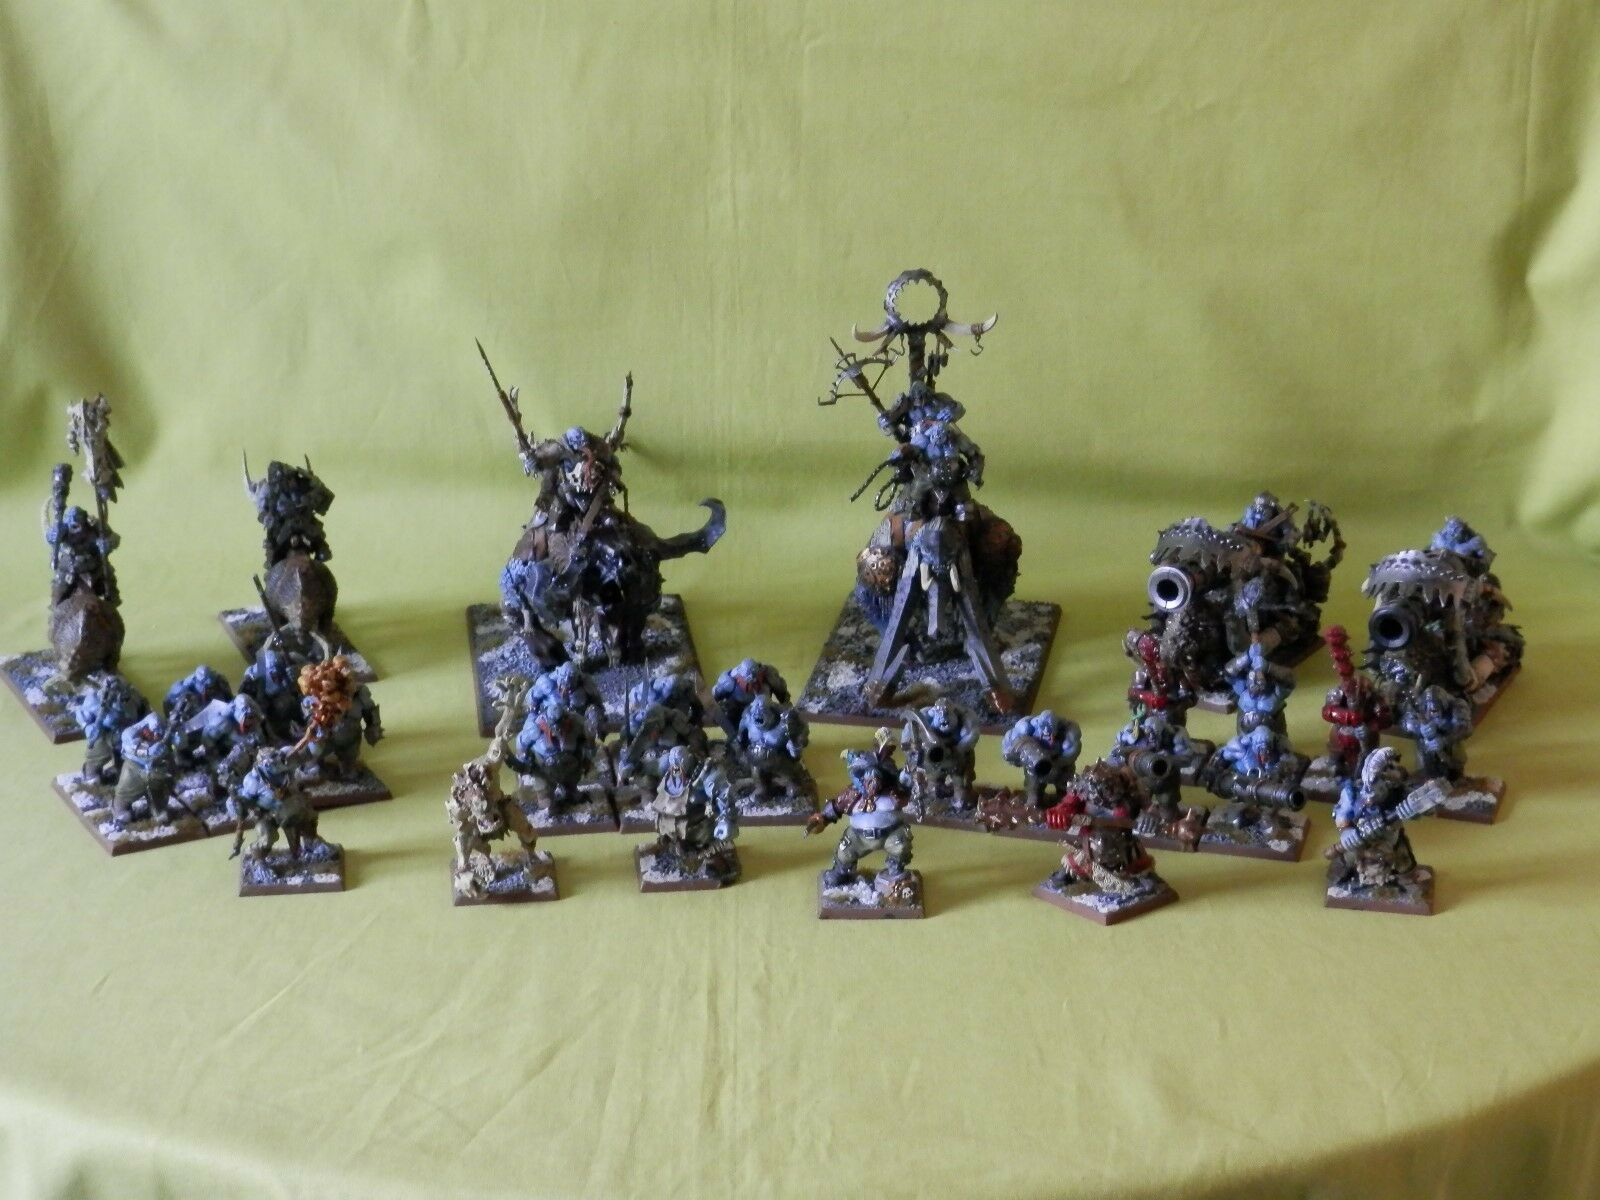 WARHAMMER AOS OGRE KINGDOMS PAINTED ARMY - MANY UNITS TO CHOOSE FROM